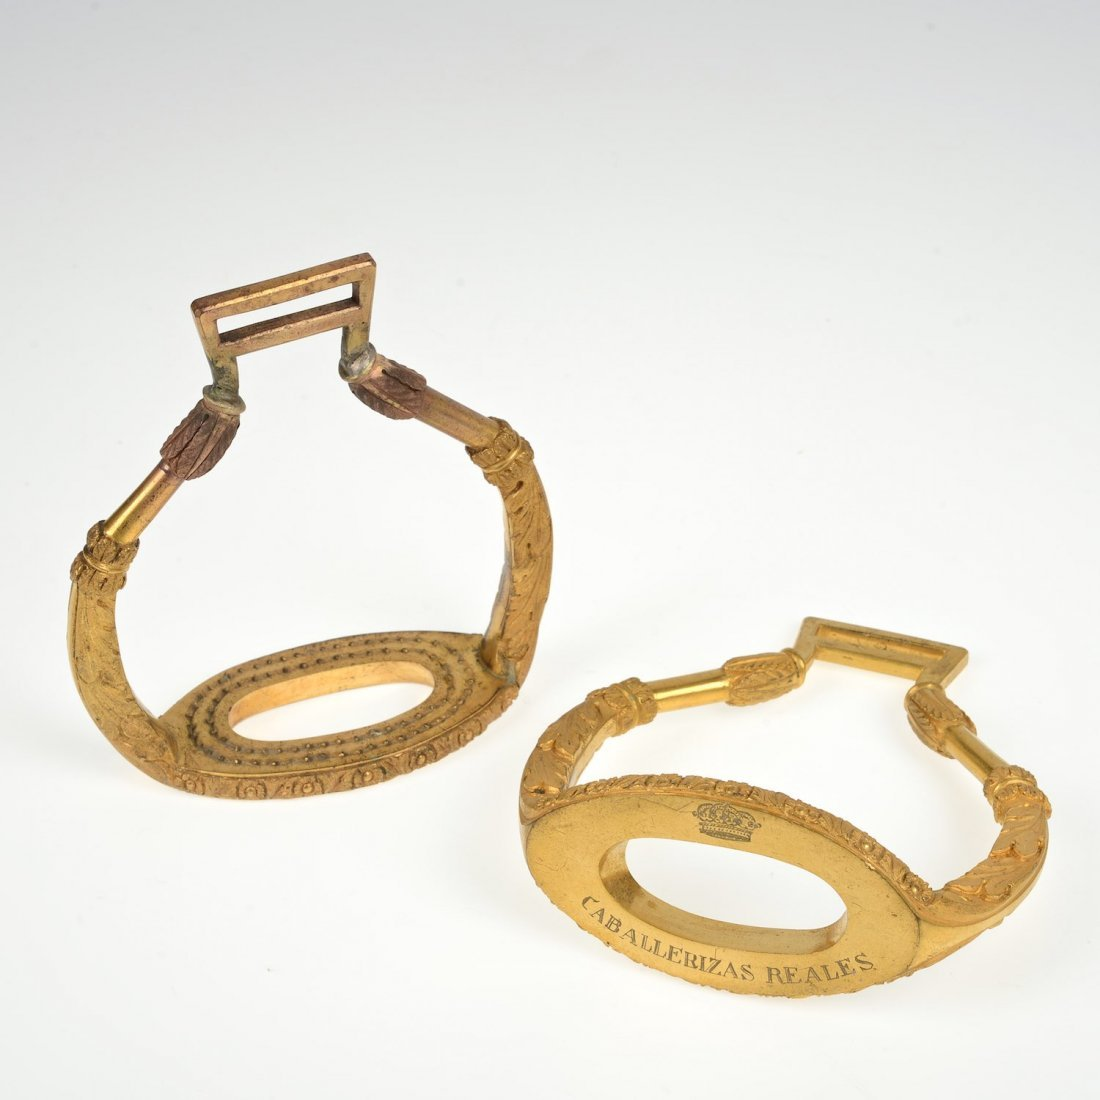 Pair Spanish bronze stirrups from the Royal Stables